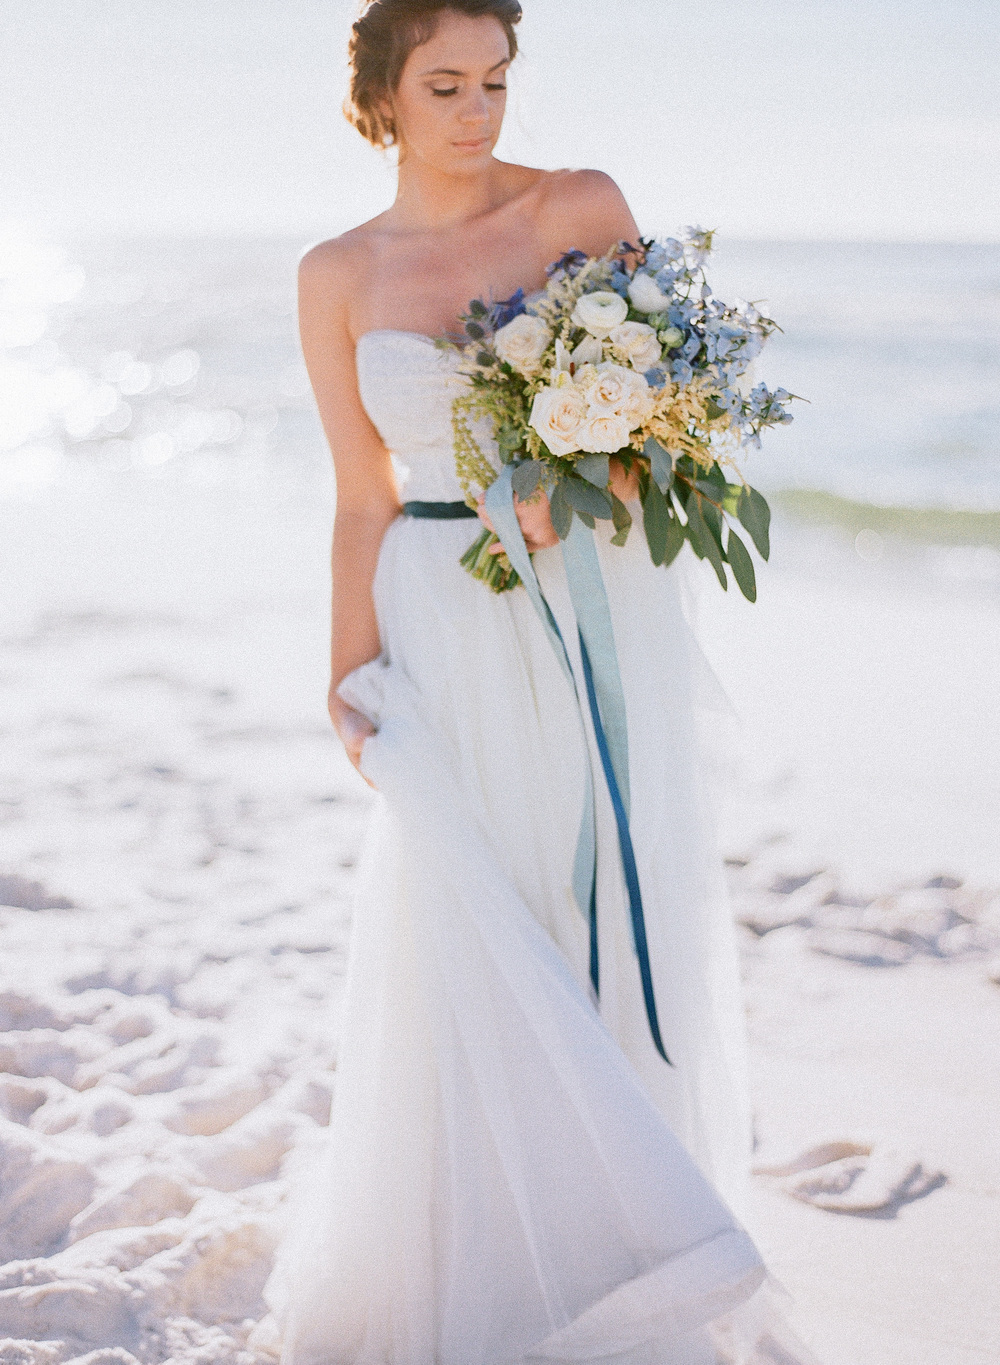 Ais-Portraits-ivey-weddings-and-events-ivory-and-beau-bridal-boutique-sunrise-wedding-sunrise-bridal-session-blue-dress-rebecca-schoneveld-wedding-dress-blue-velvet-wedding-beach-wedding-savannah-bridal-boutique-savannah-wedding-24.jpg